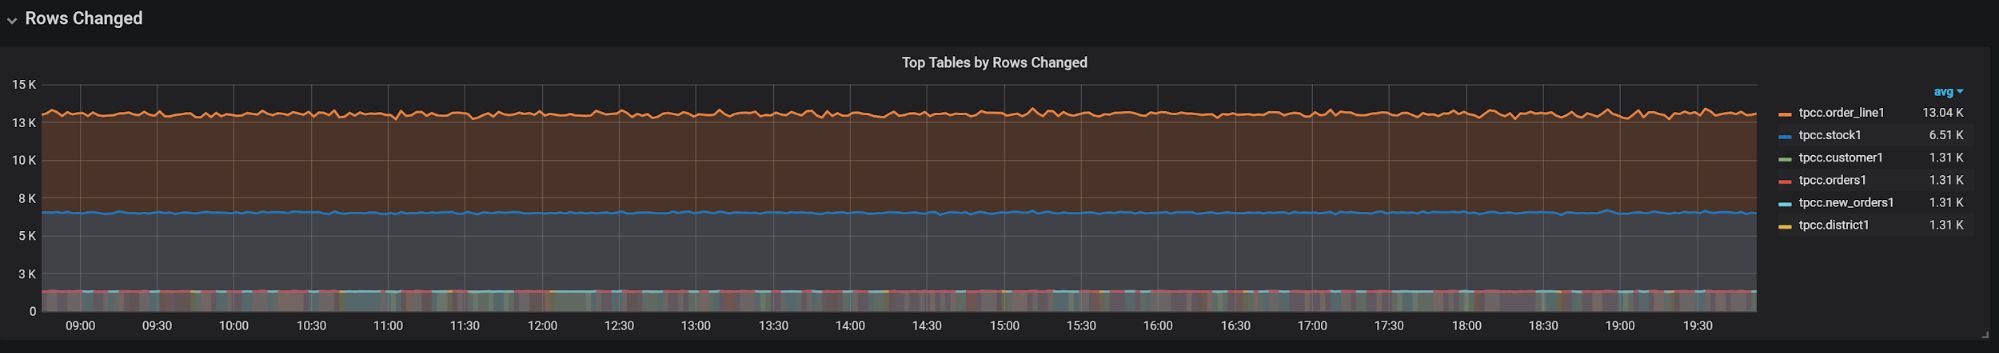 top tables by rows changed